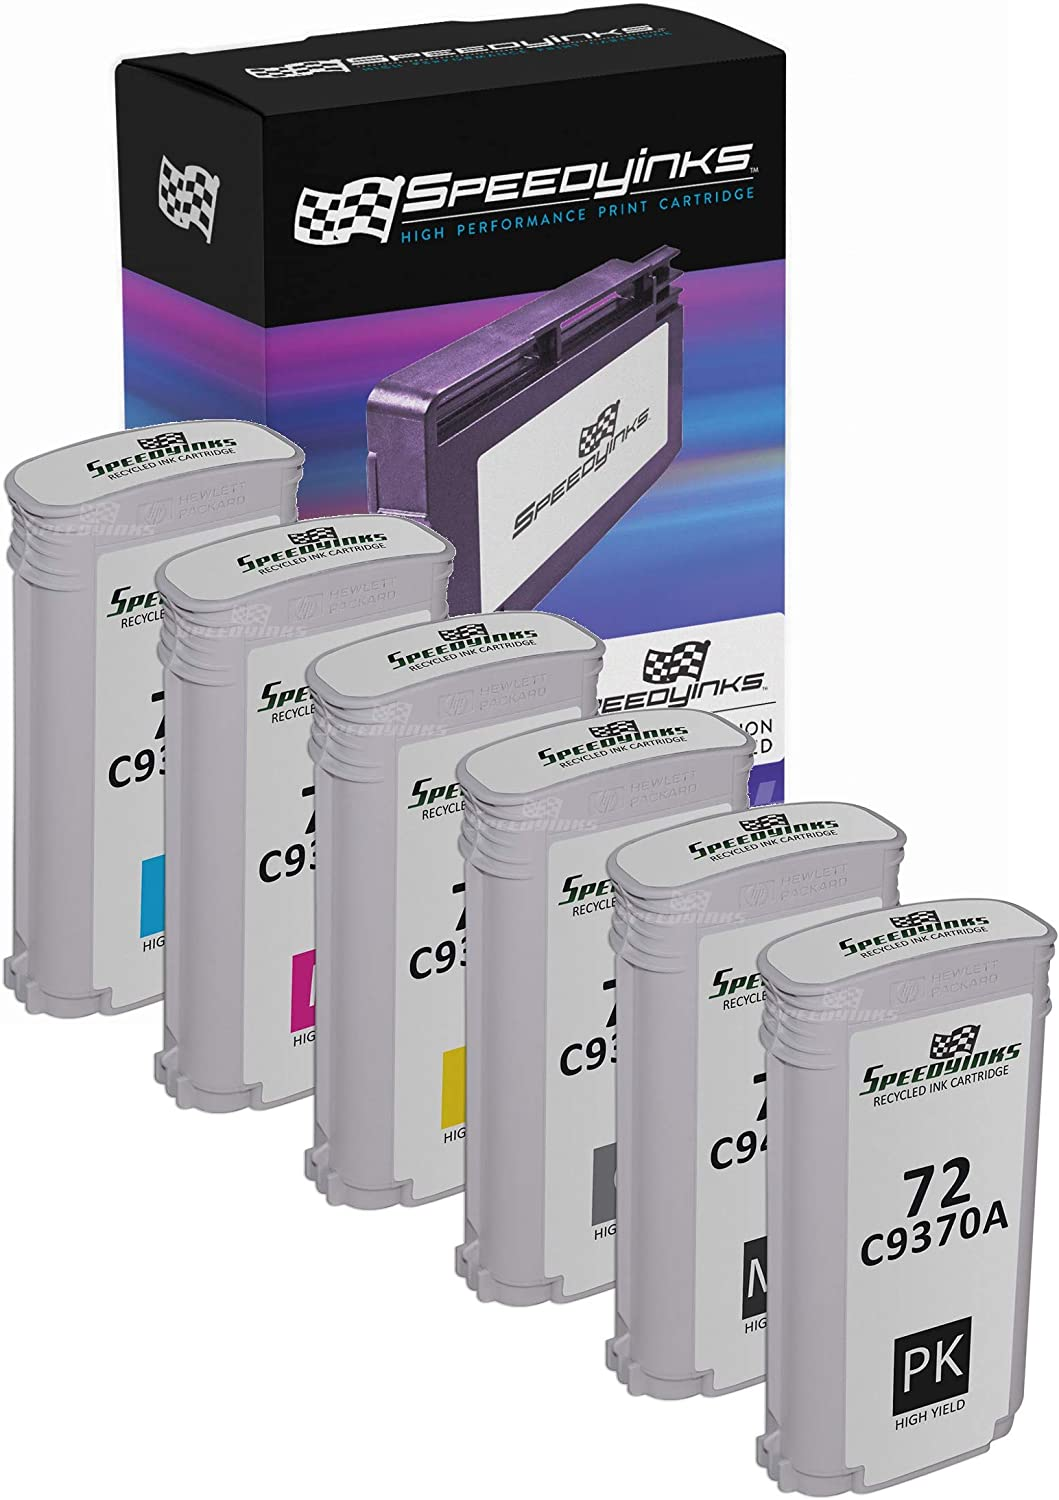 Speedy Inks Remanufactured Ink Cartridge Replacement for HP 72 High-Yield (1 Photo Black, 1 Matte Black, 1 Gray, 1 Cyan, 1 Magenta, 1 Yellow, 6-Pack)